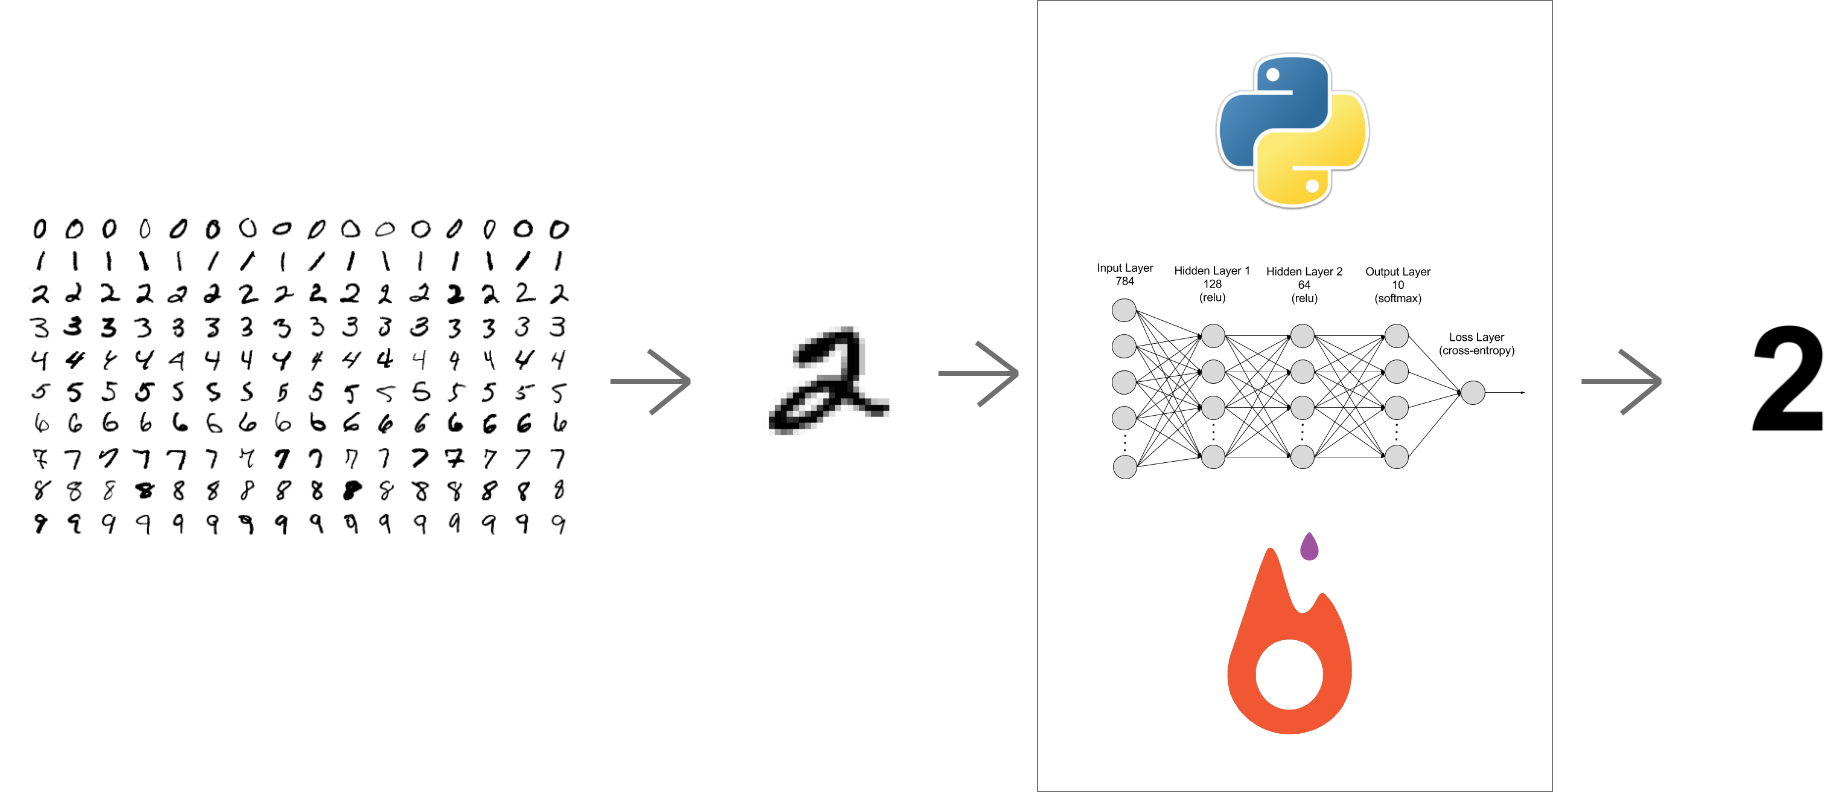 Handwritten Digit Recognition Using PyTorch — Intro To